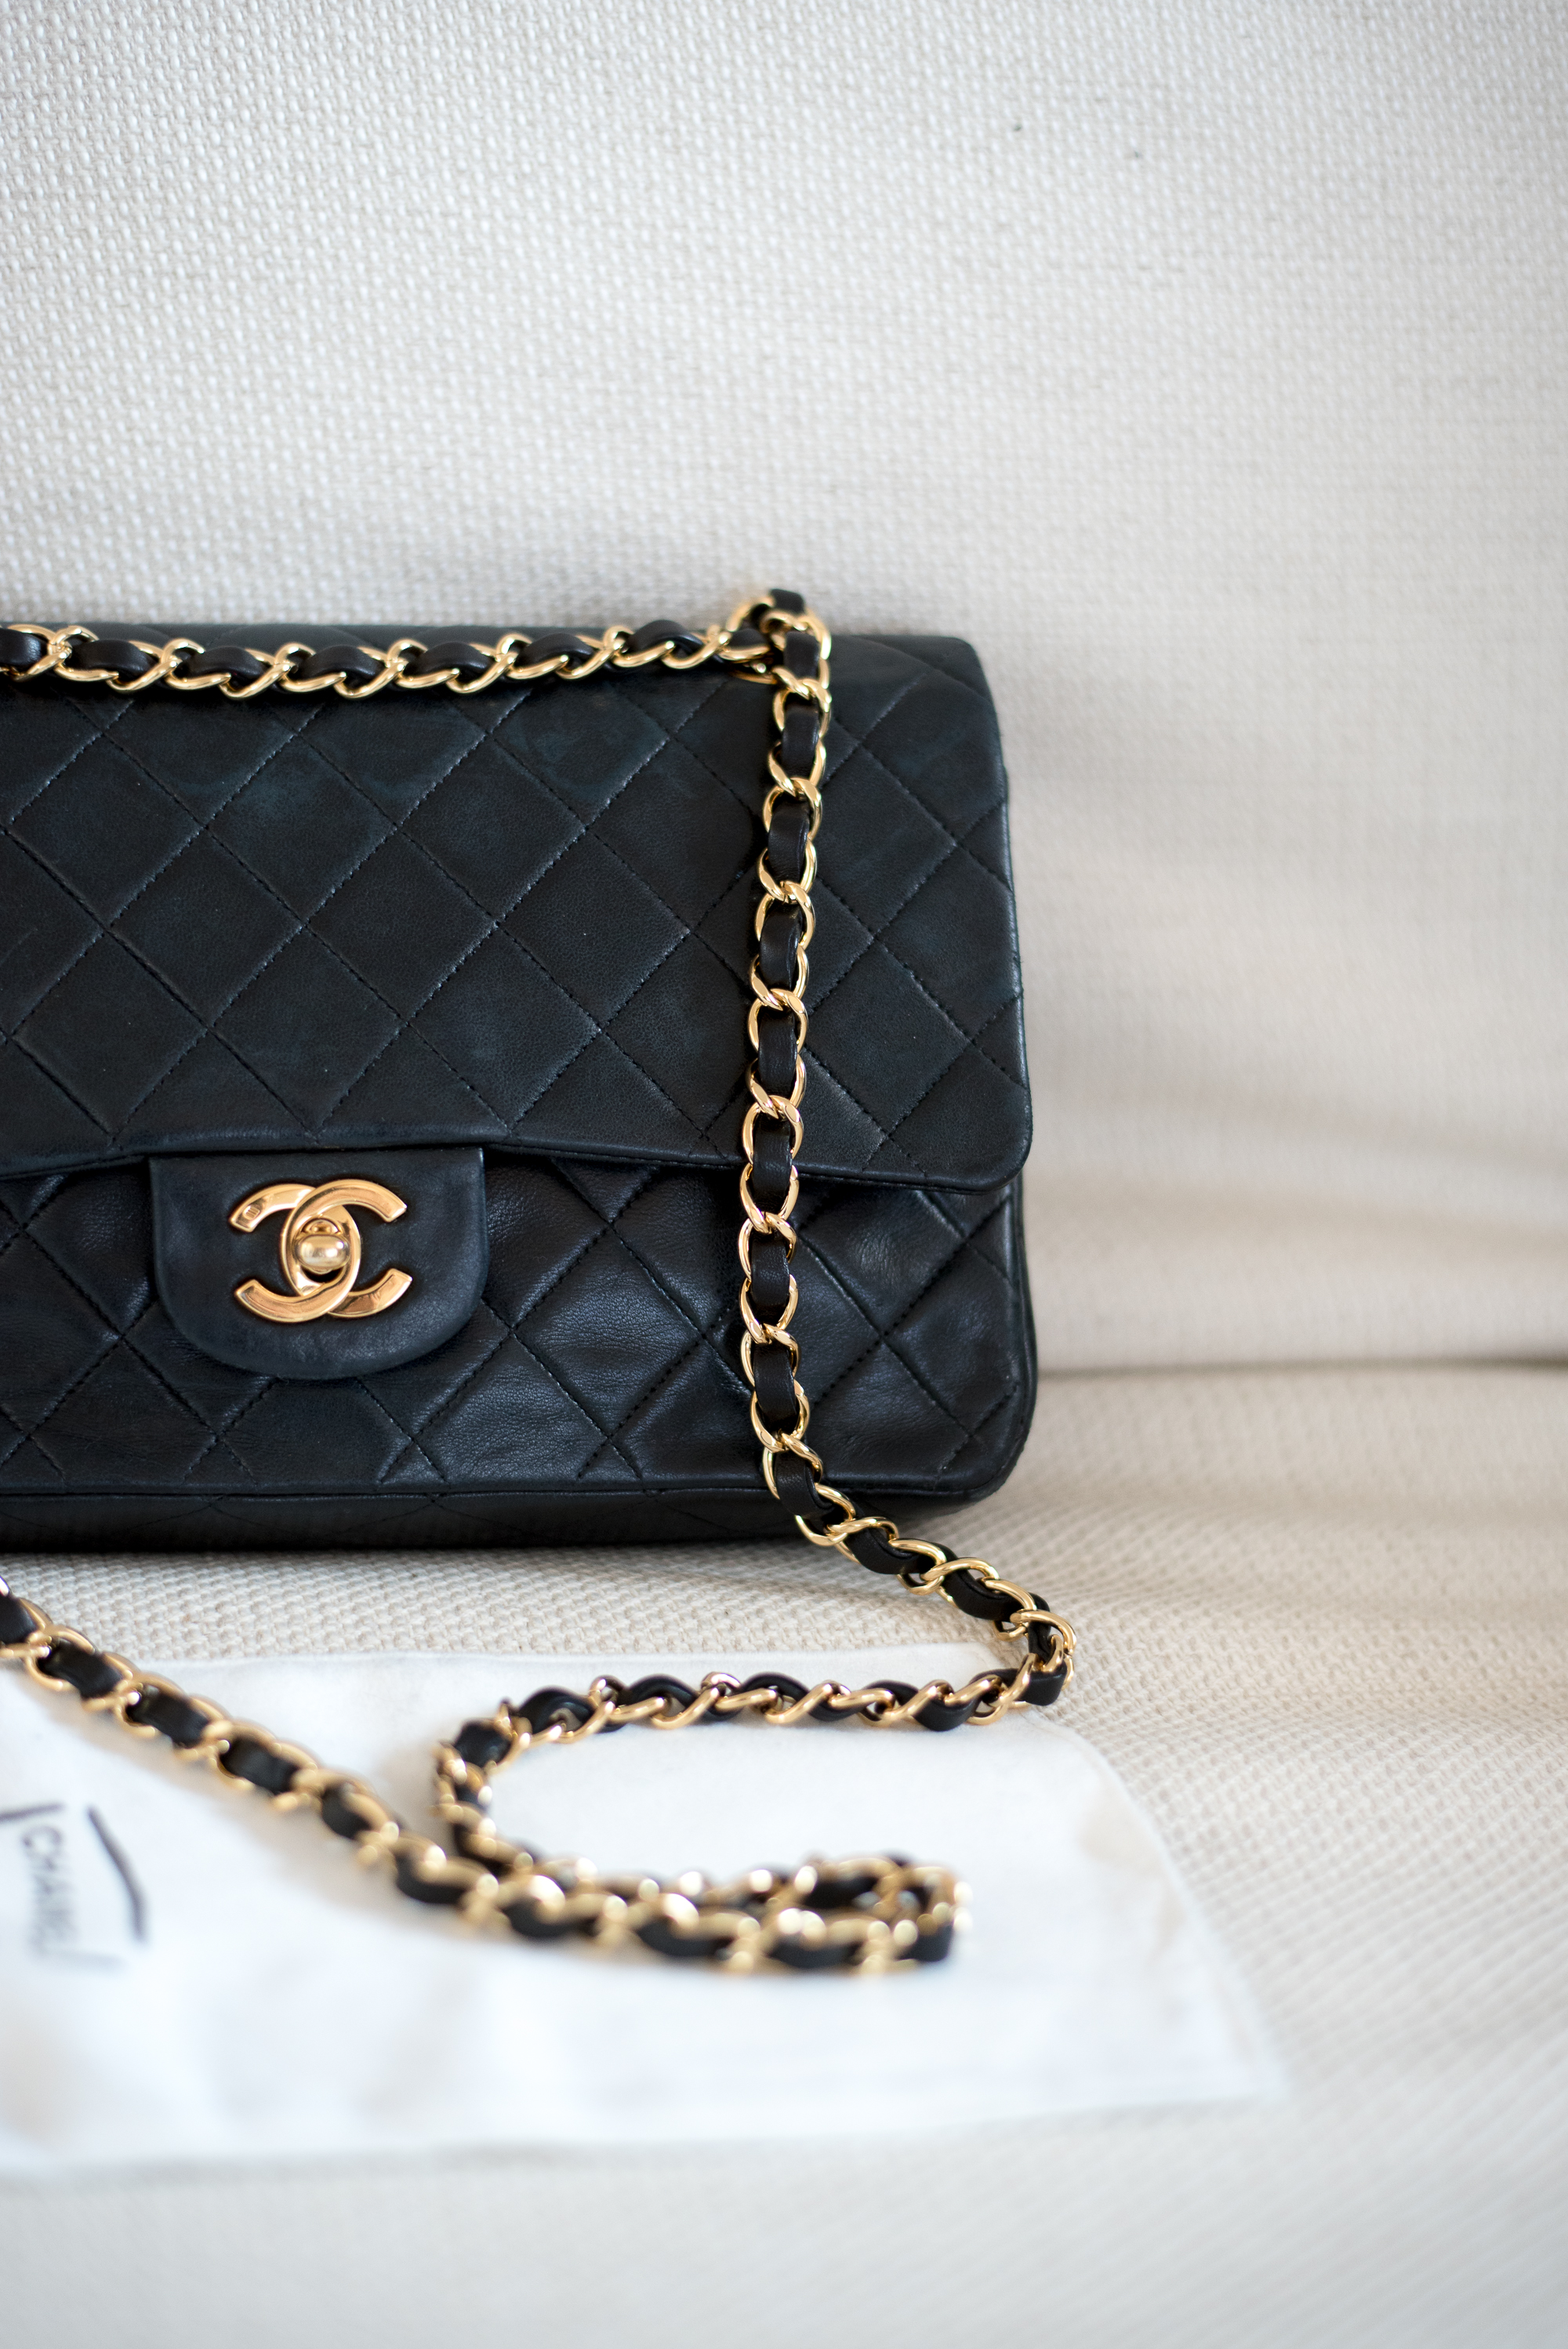 chanel-repair-service-4